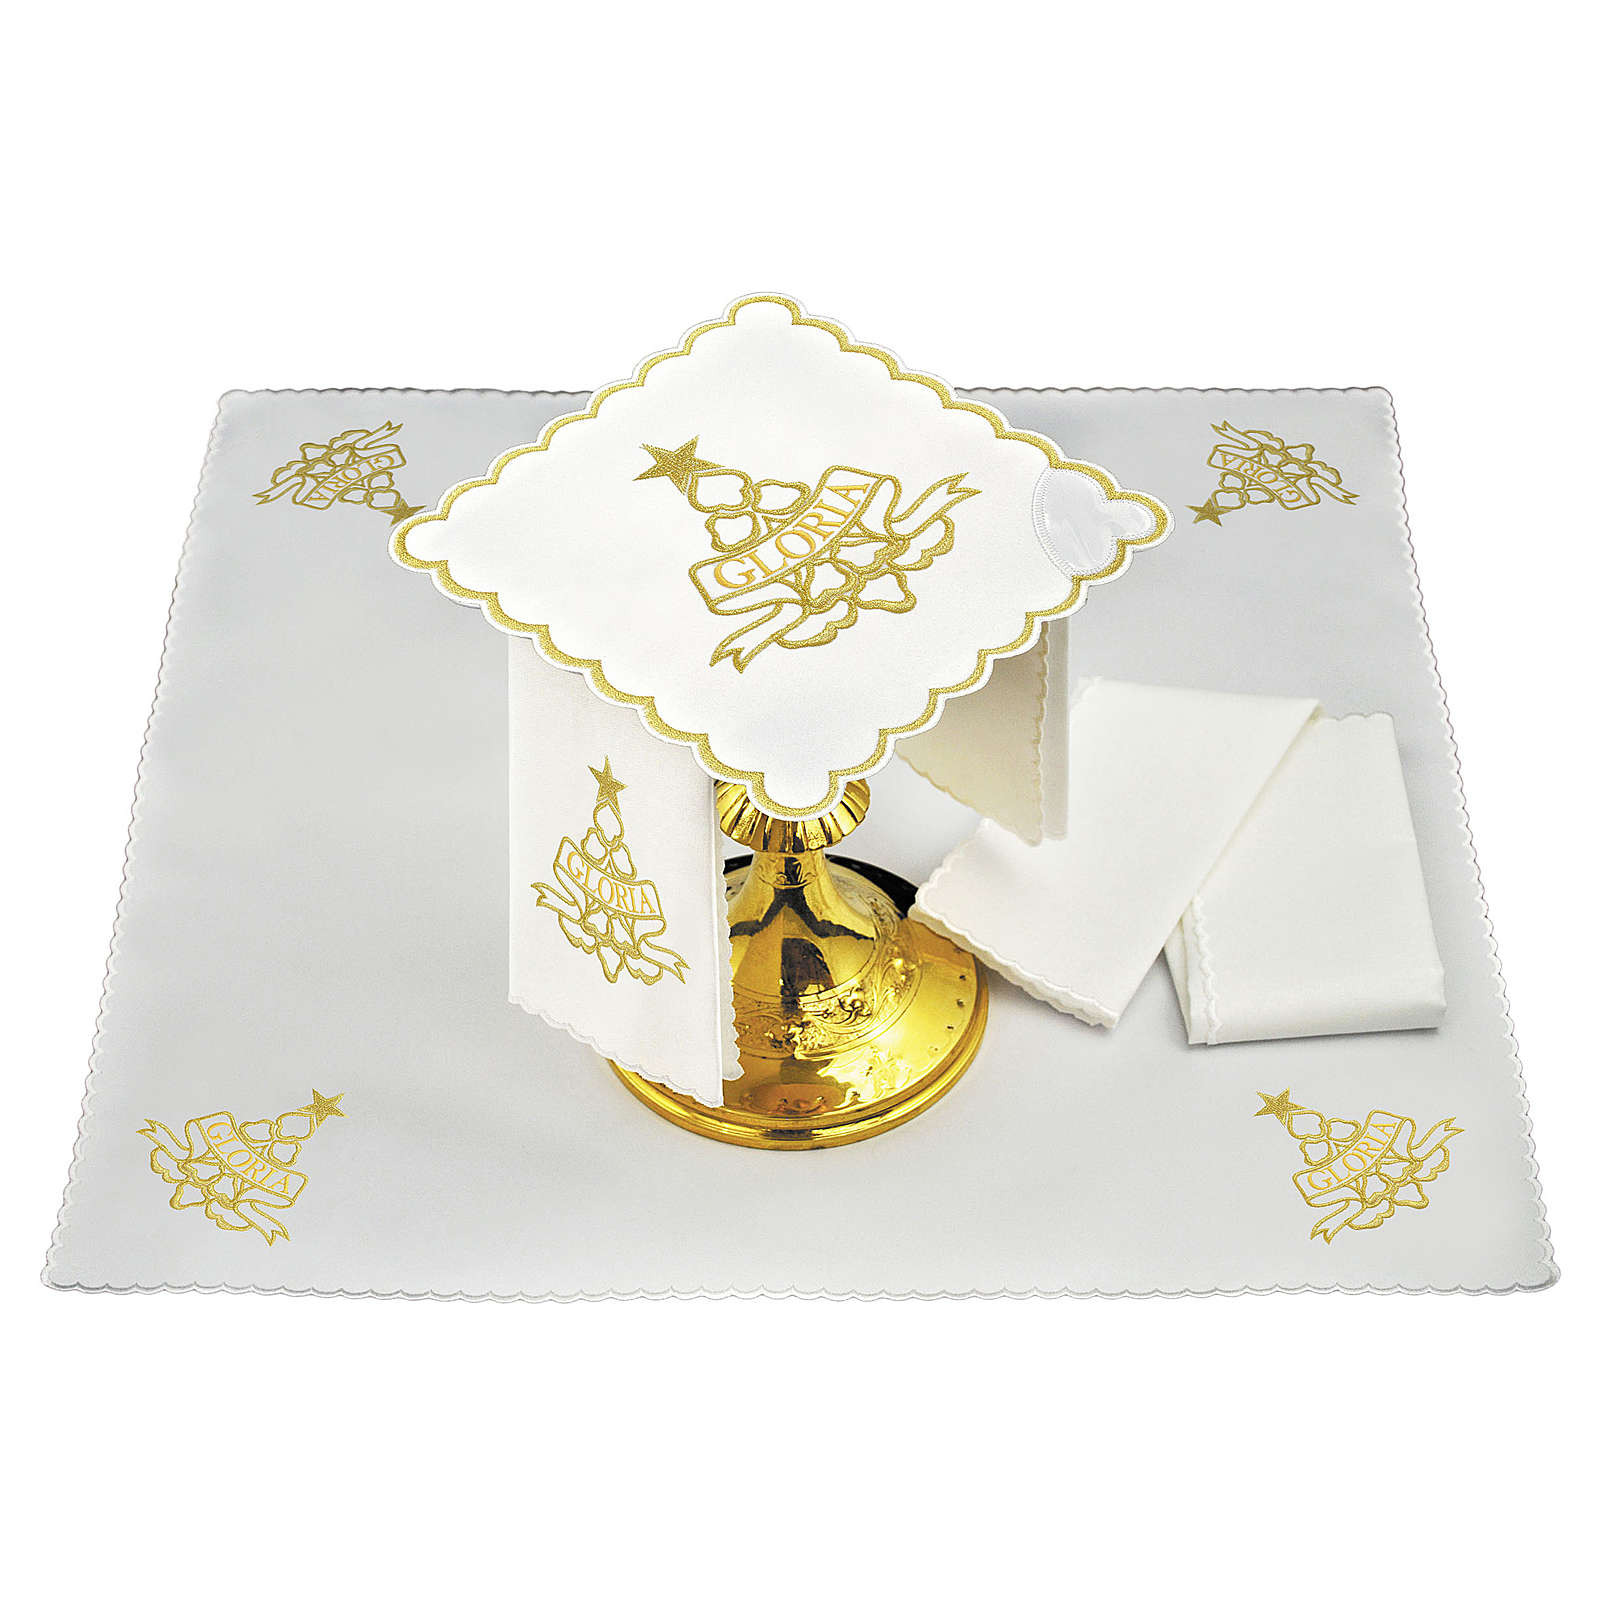 Altar linen golden embroideries Glory and star, cotton 4